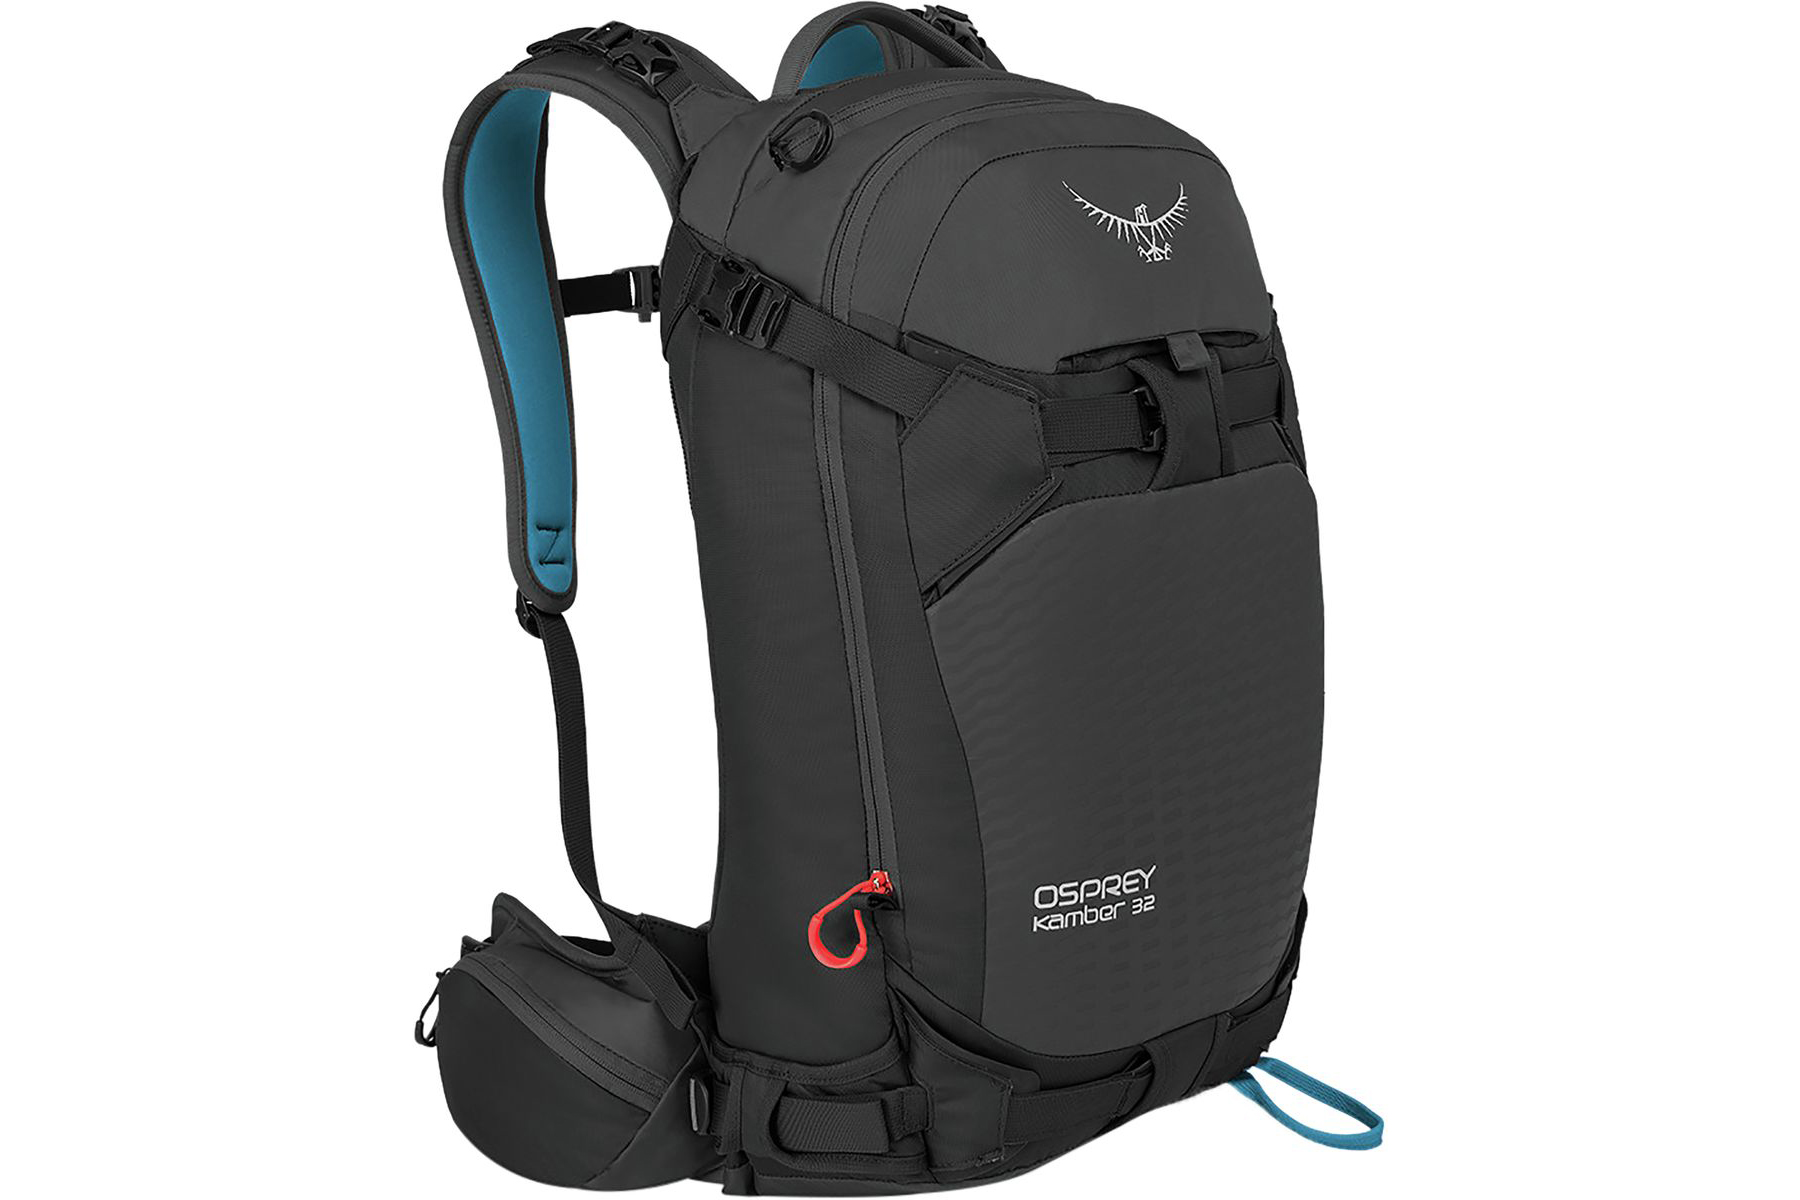 4a46e006da3f 13 Backcountry Cyber Monday Deals Too Awesome to Pass Up - Men s Journal